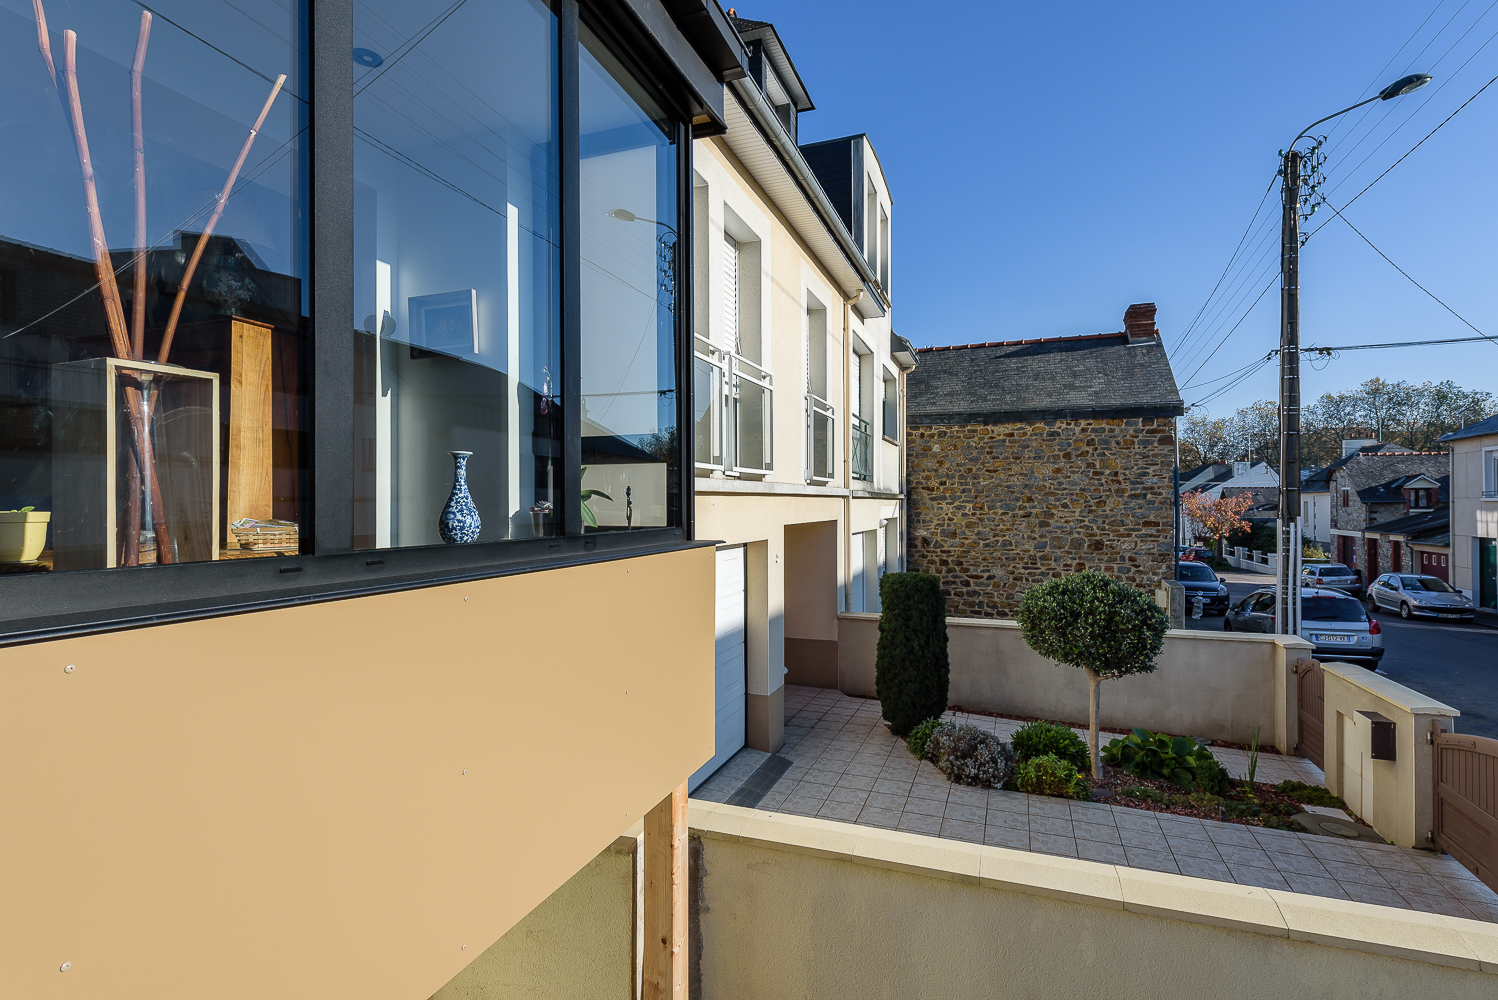 photographe d'architecture ©INTERVALphoto : Rocher Typhaine architecte maison individuelle, bow-window, Rennes(35)